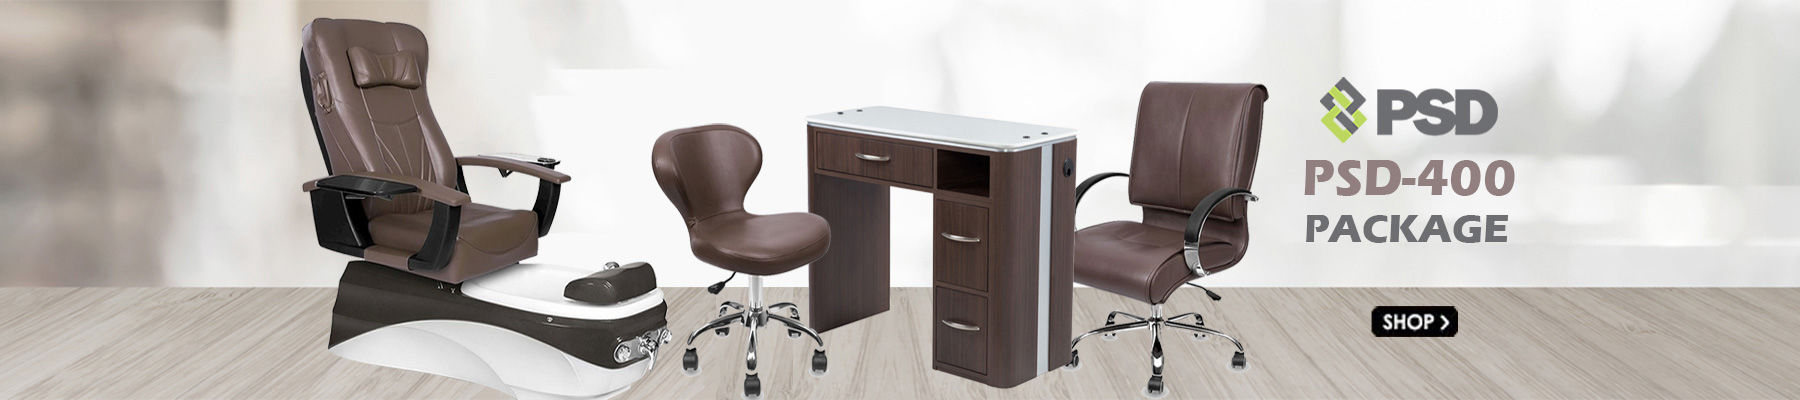 PSD400 Pedicure Chair Package